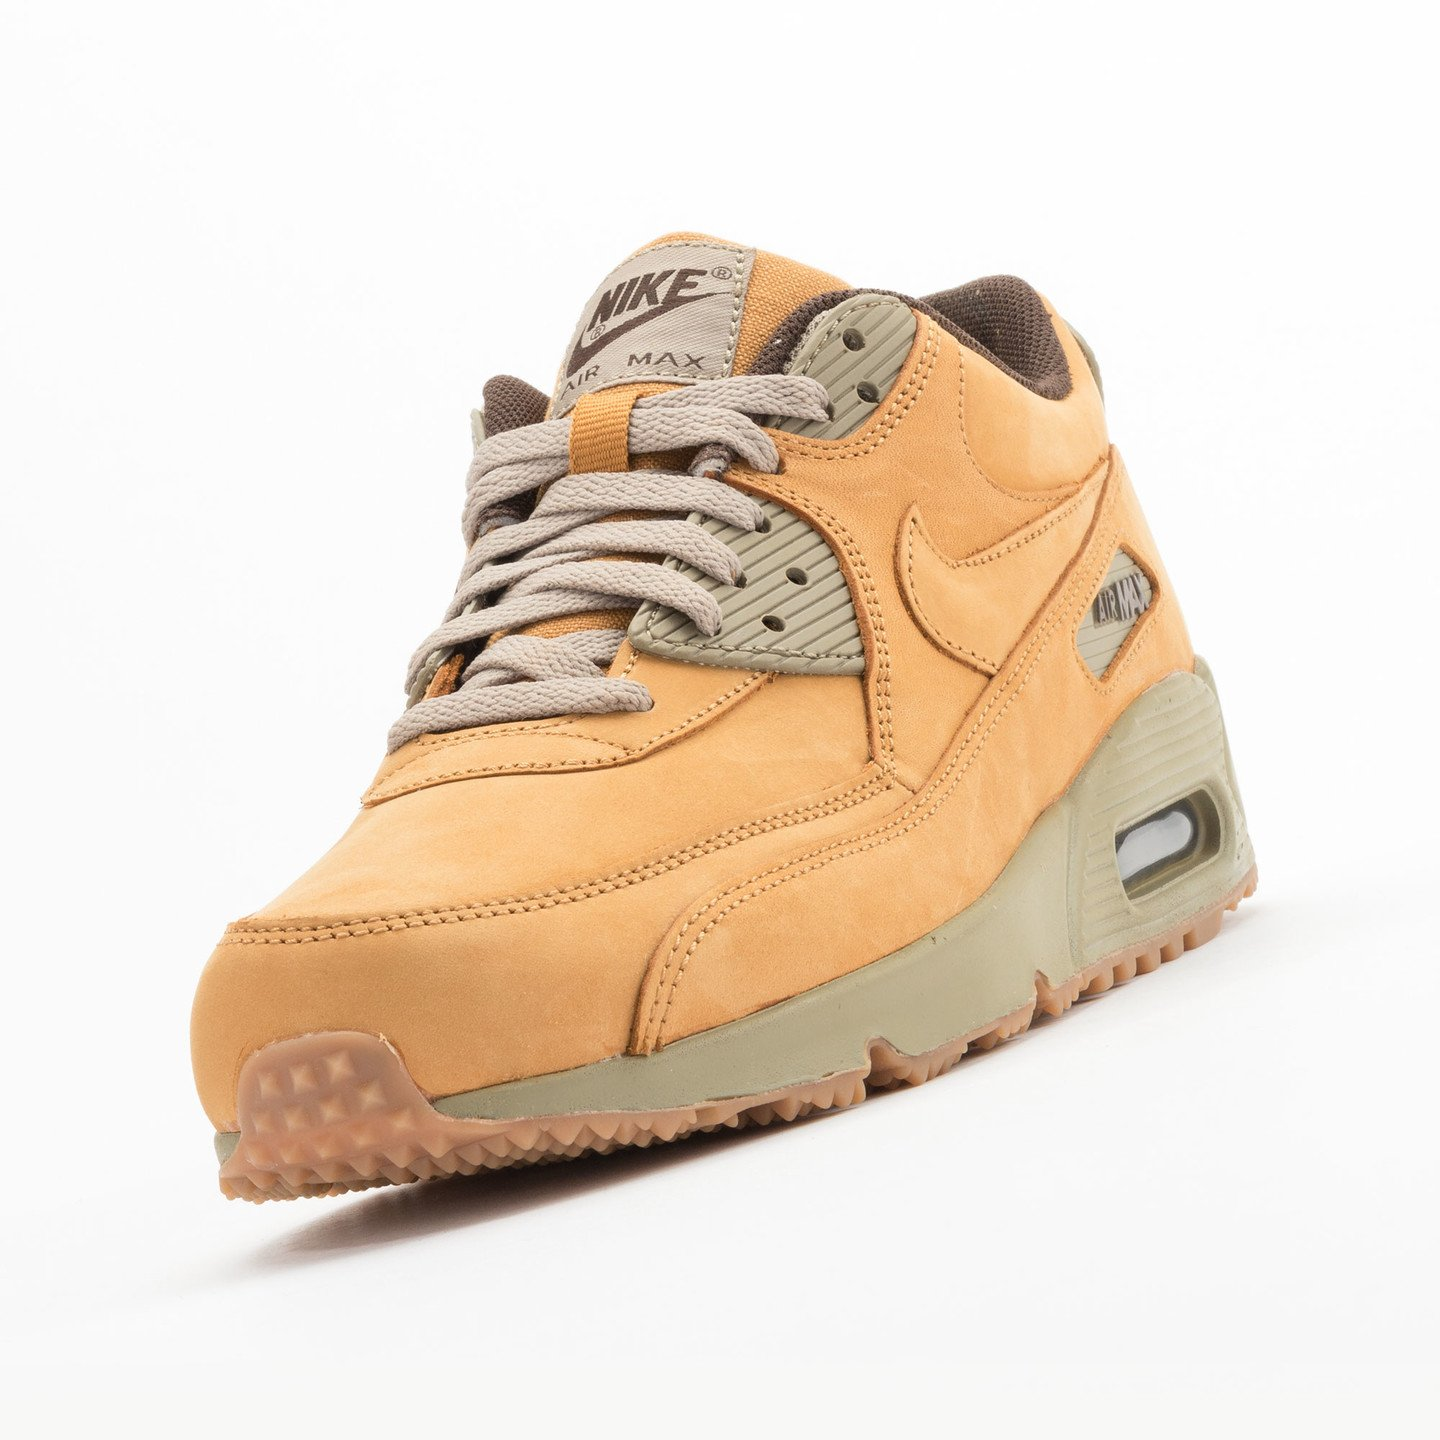 Nike Air Max 90 Winter Premium Bronze / Baroque Brown 683282-700-43